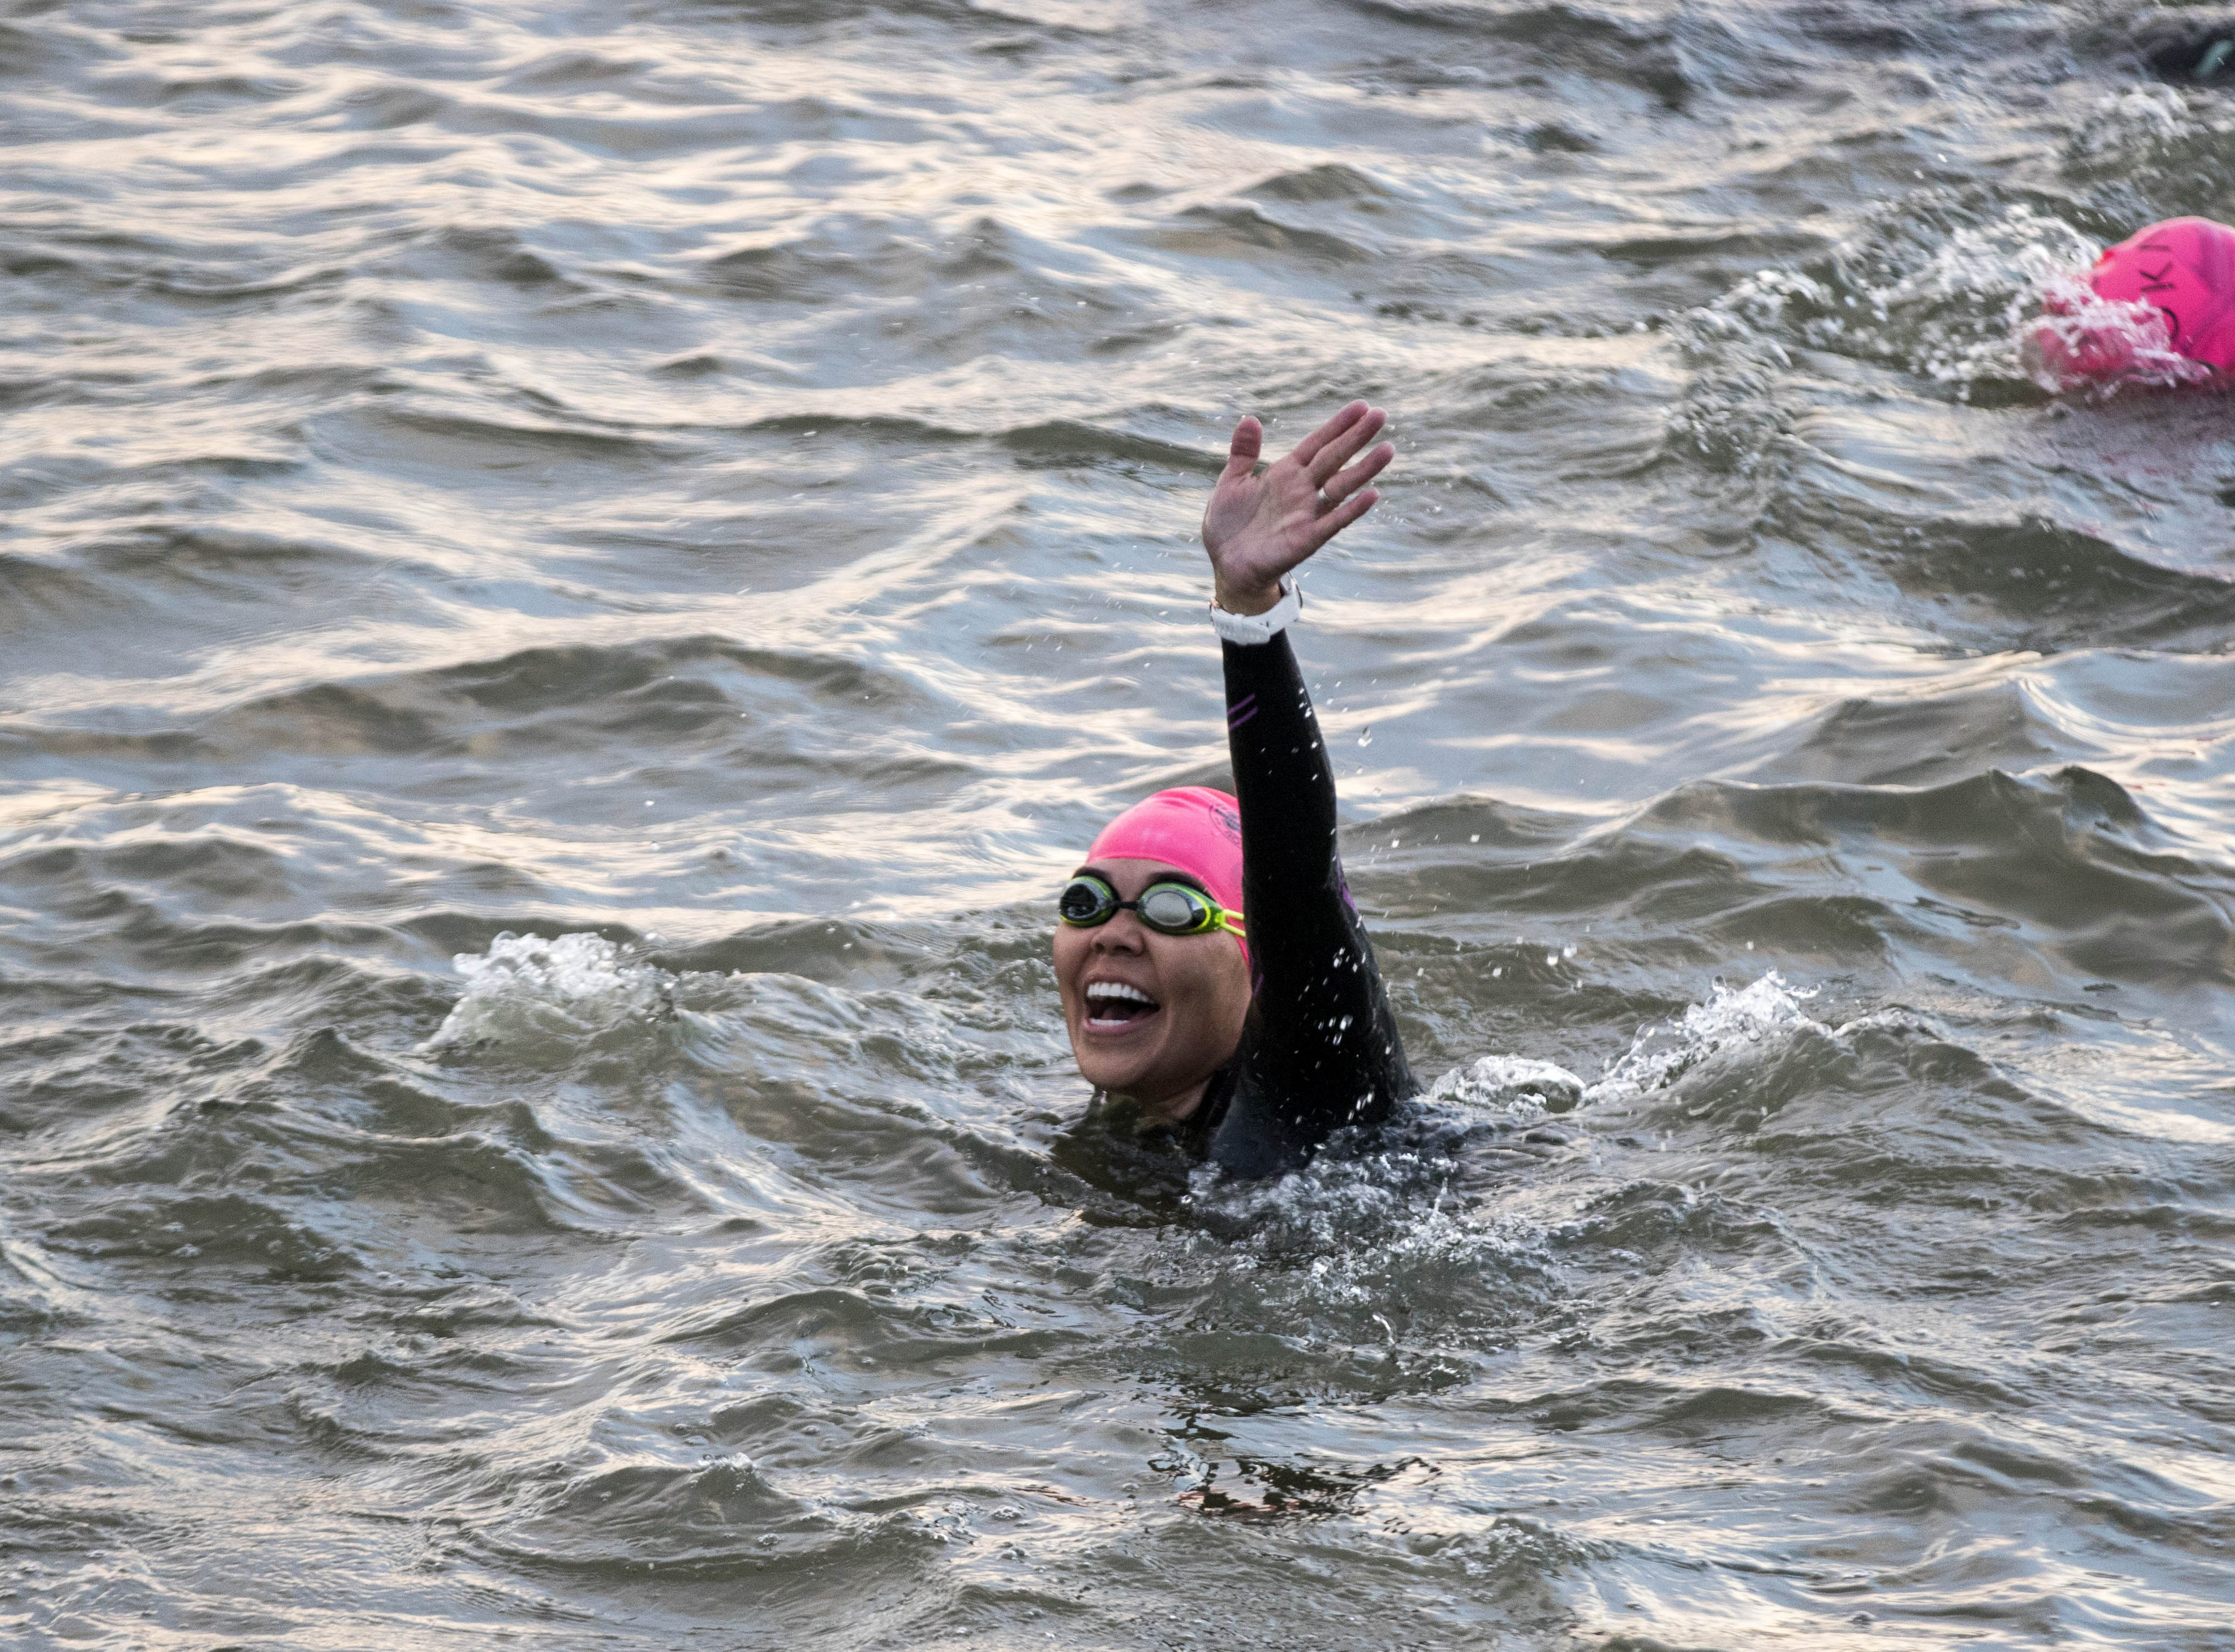 An Ironman competitor waves to their fans as she swims during the Tempe Ironman at Tempe Town Lake Nov.18, 2018.